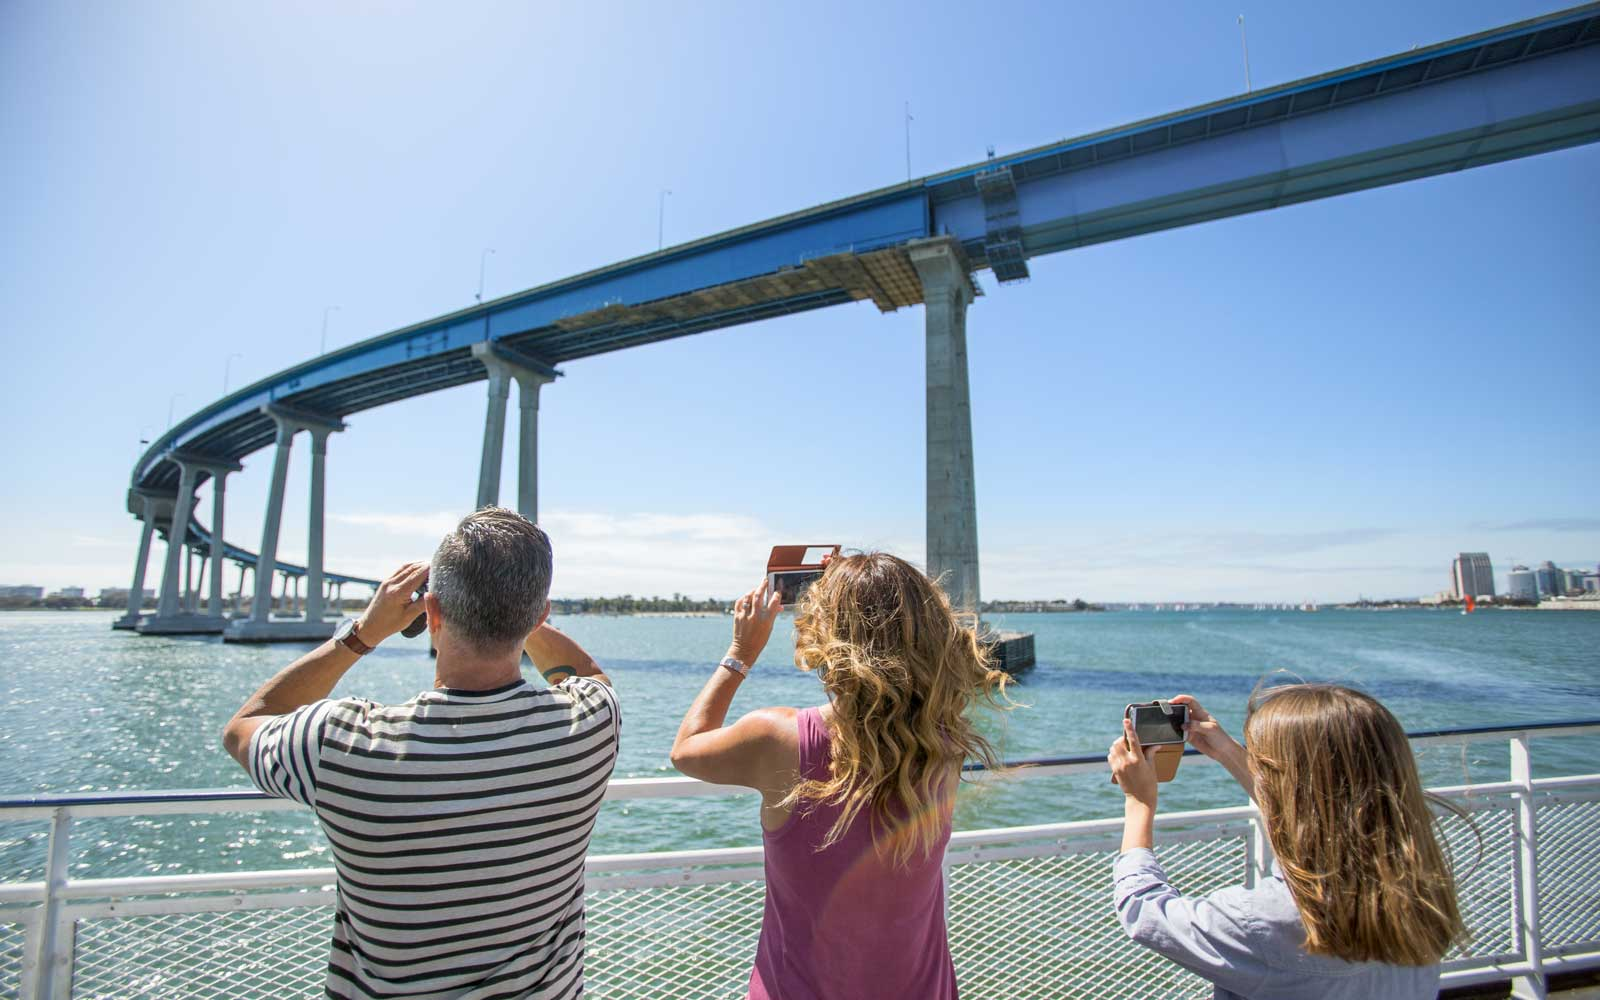 Tourists on Hornblower cruise in San Diego near Coronado bridge